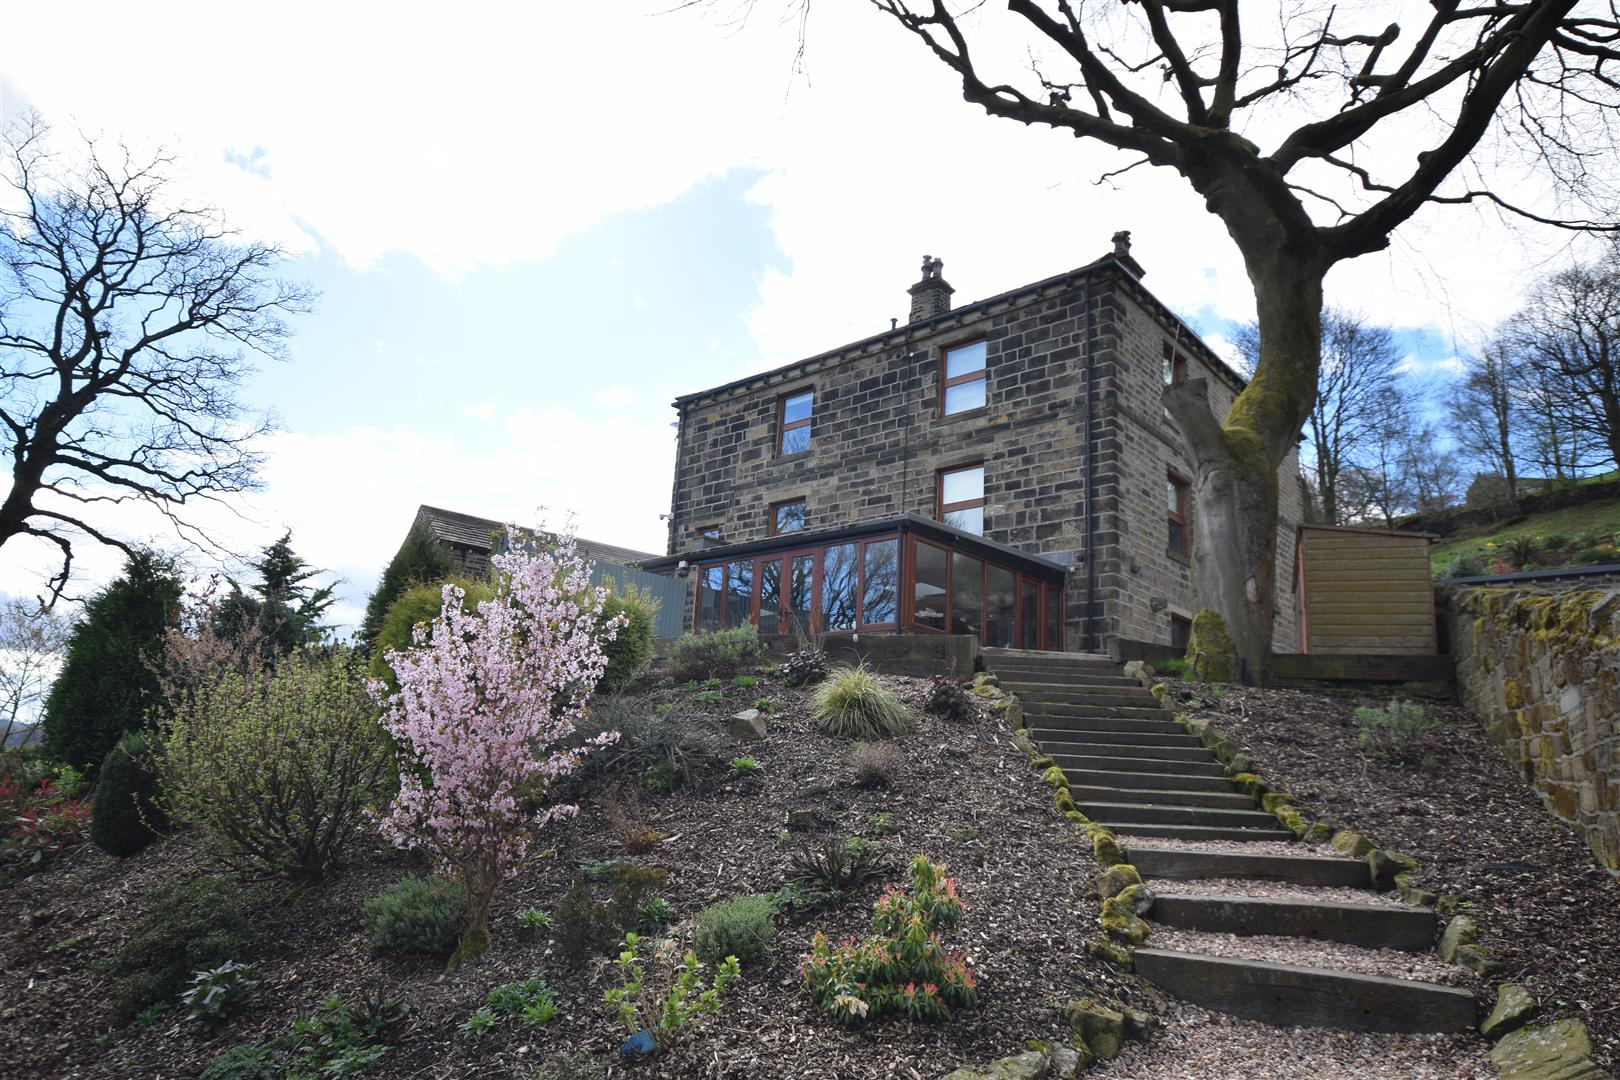 Milner Royd House West, Off London Road, Norland, HX6 3QY